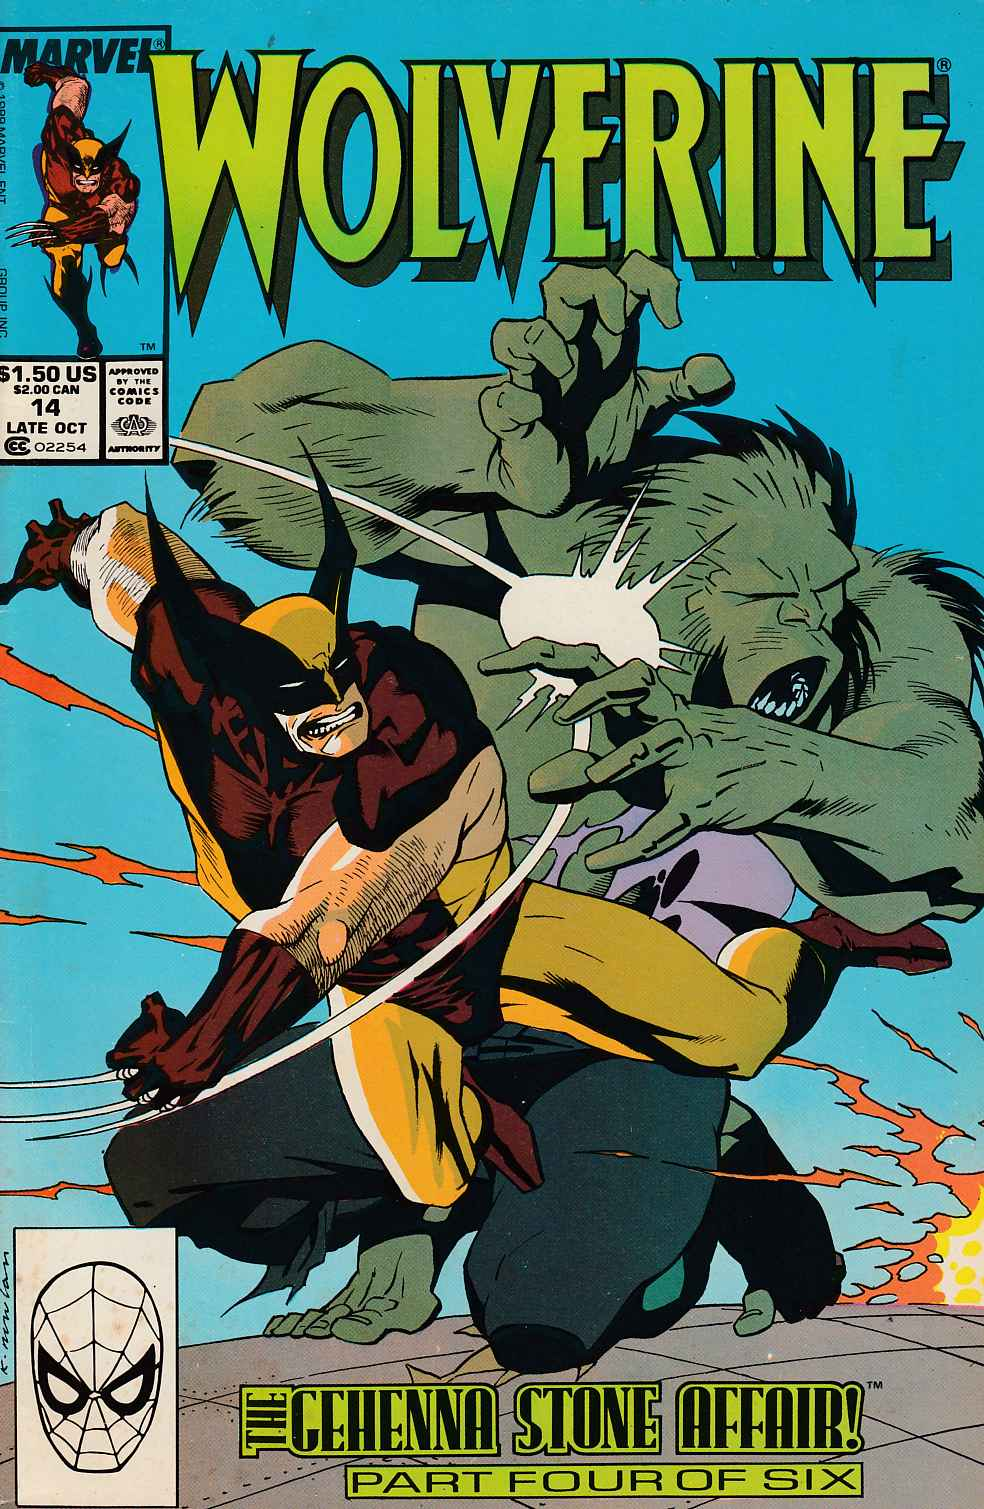 Wolverine #14 Very Good (4.0) [Marvel Comic] THUMBNAIL